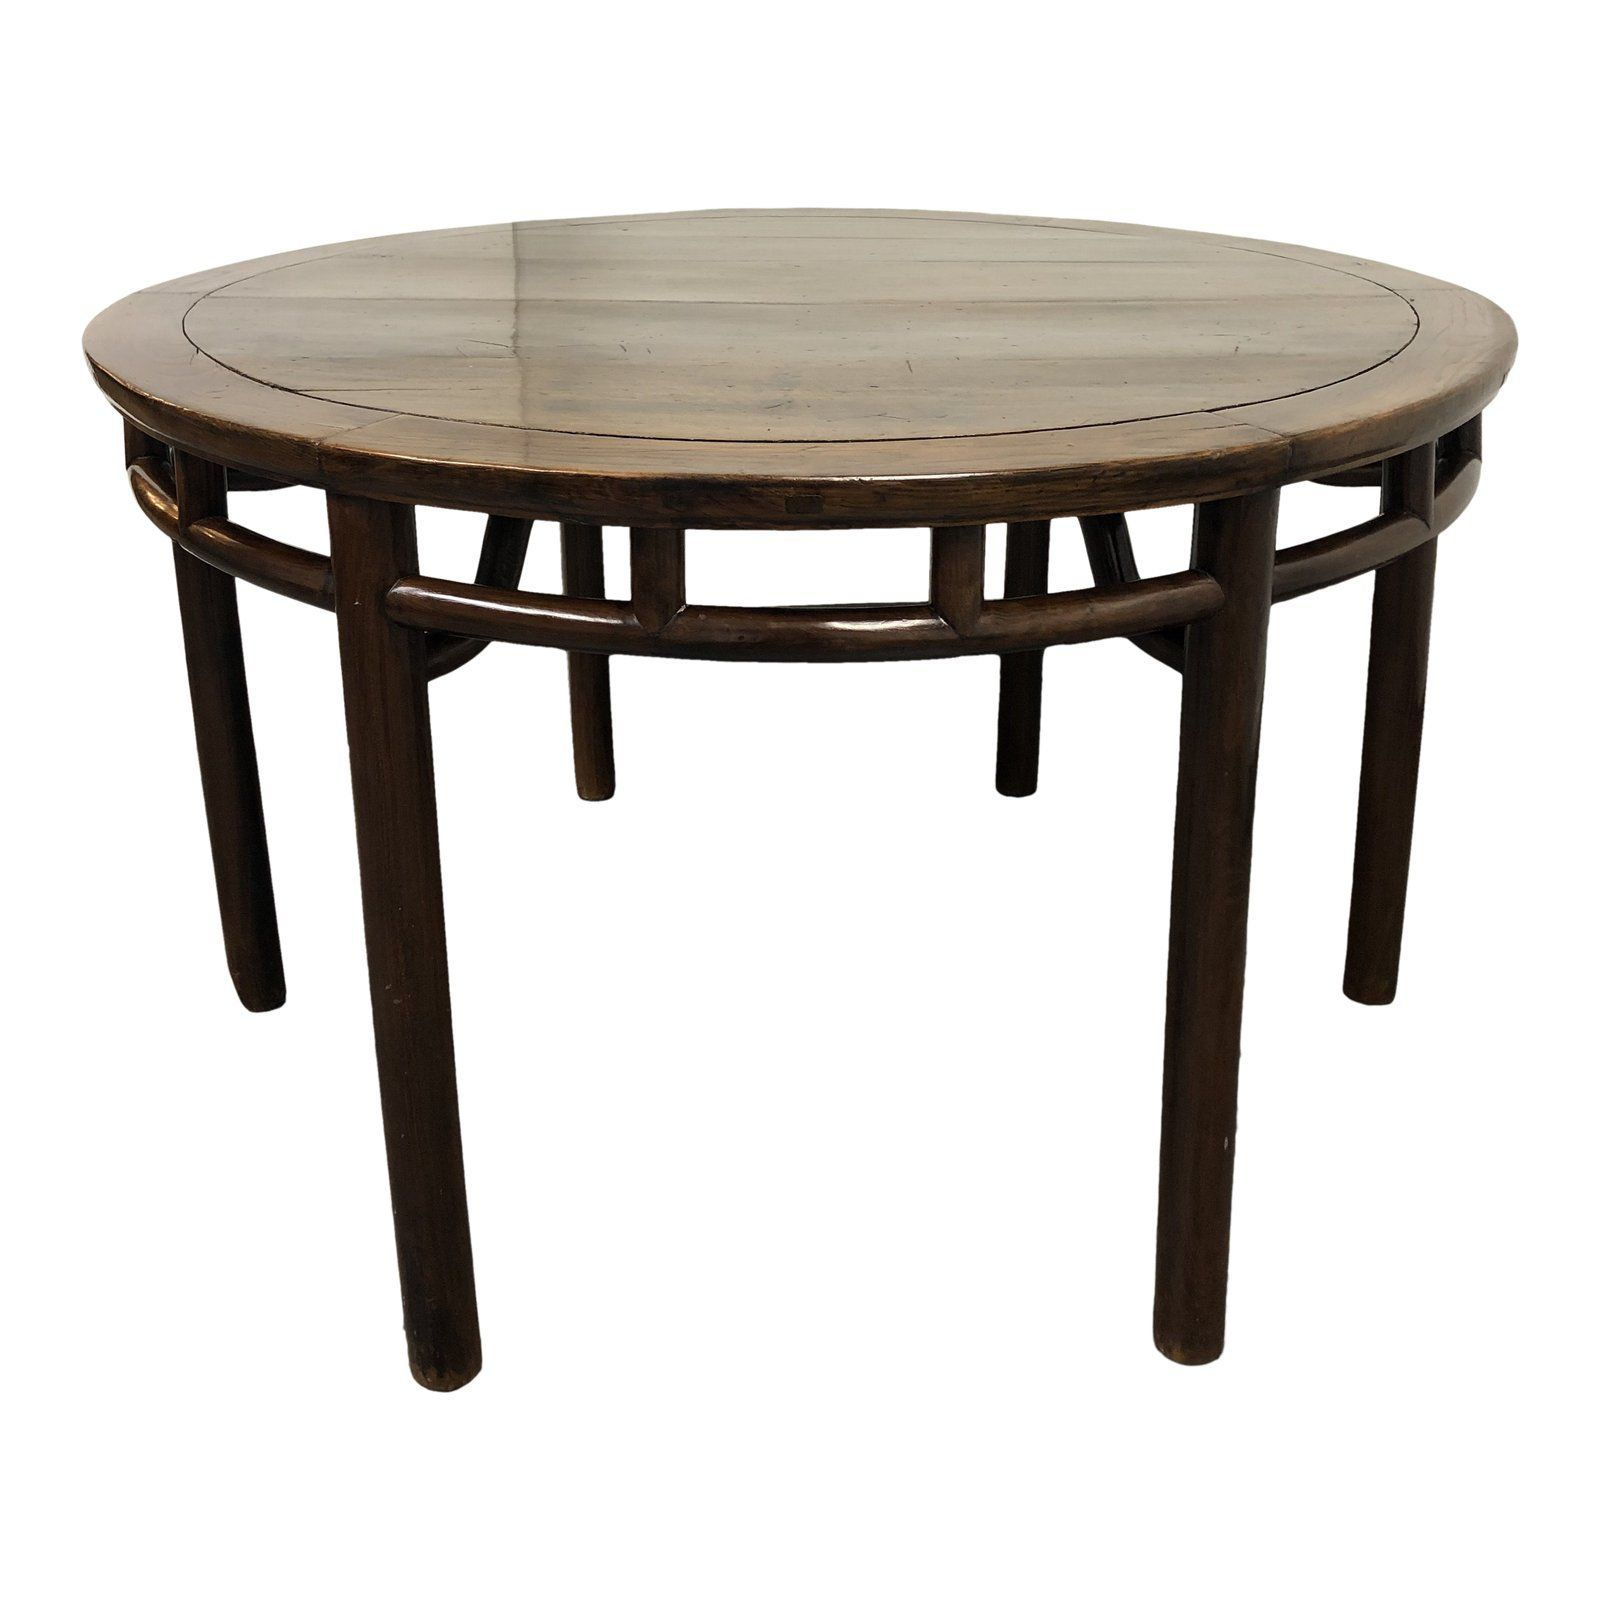 19th Century Chinese Jumu Elm Round Table Chairish Dining Table Table Coffee Table [ 1600 x 1600 Pixel ]